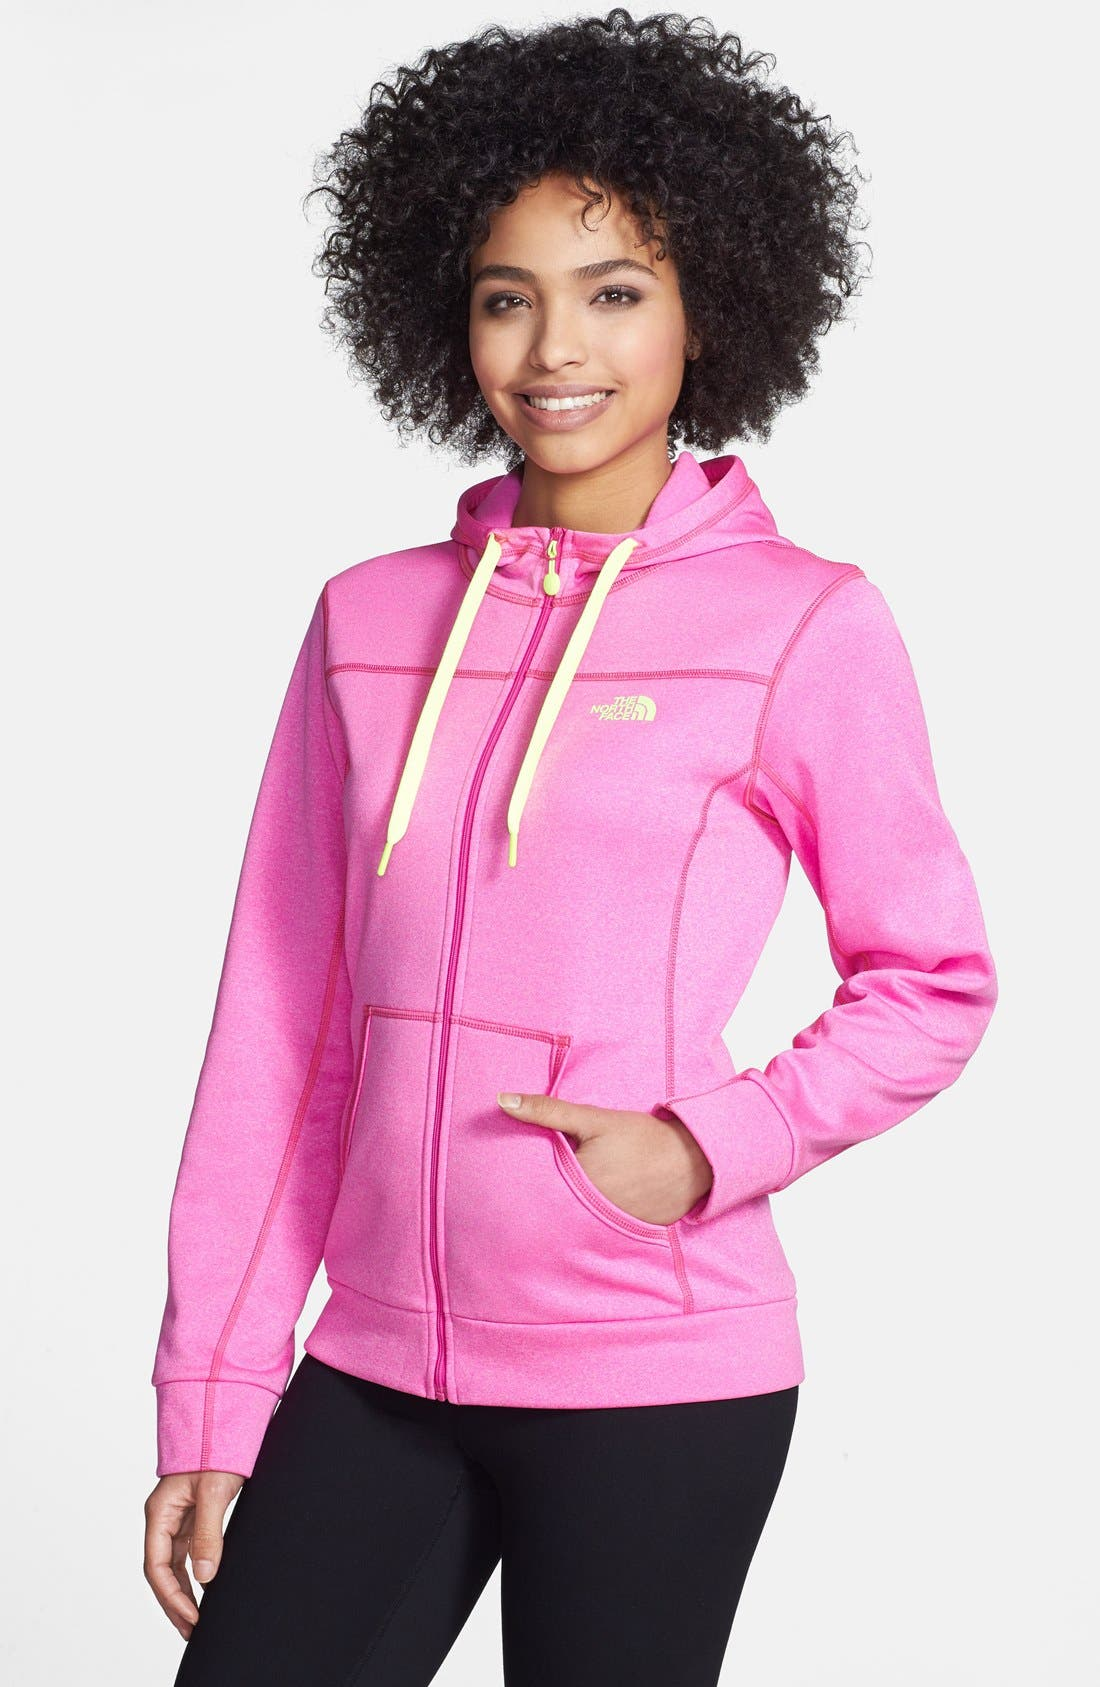 Main Image - The North Face 'Fave-Our-Ite' Full Zip Hoodie